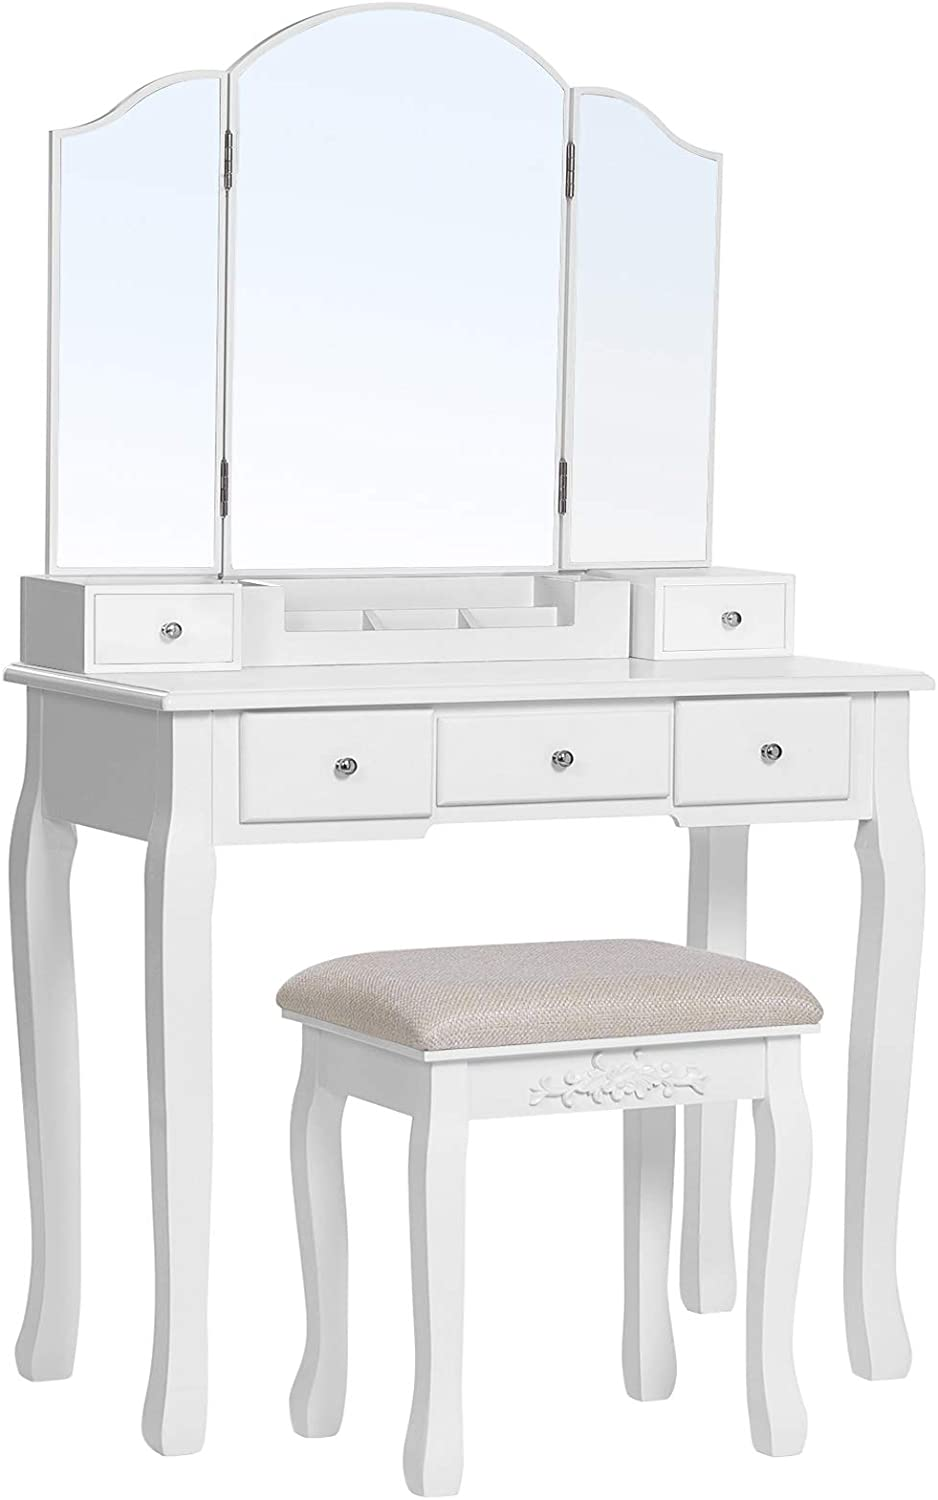 Amazon Com Vasagle Vanity Set Dressing Table Set With Tri Folding Mirror Makeup Table With 5 Drawers And 1 Removable Storage Box Solid Wood Legs Cushioned Stool White Urdt28wt Furniture Decor